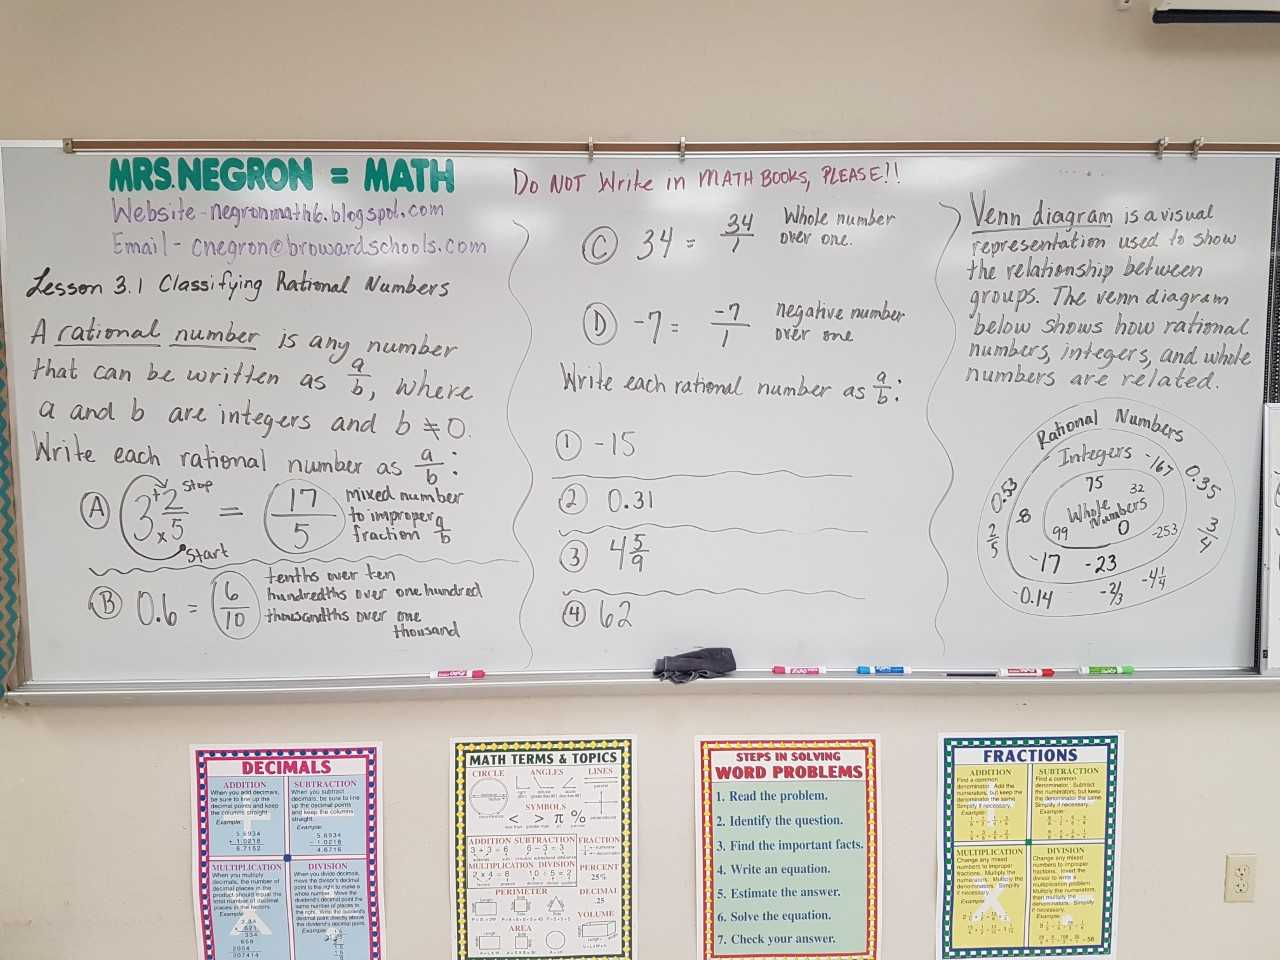 Mrs Negron 6th Grade Math Class Lesson 3 1 Classifying Rational Numbers